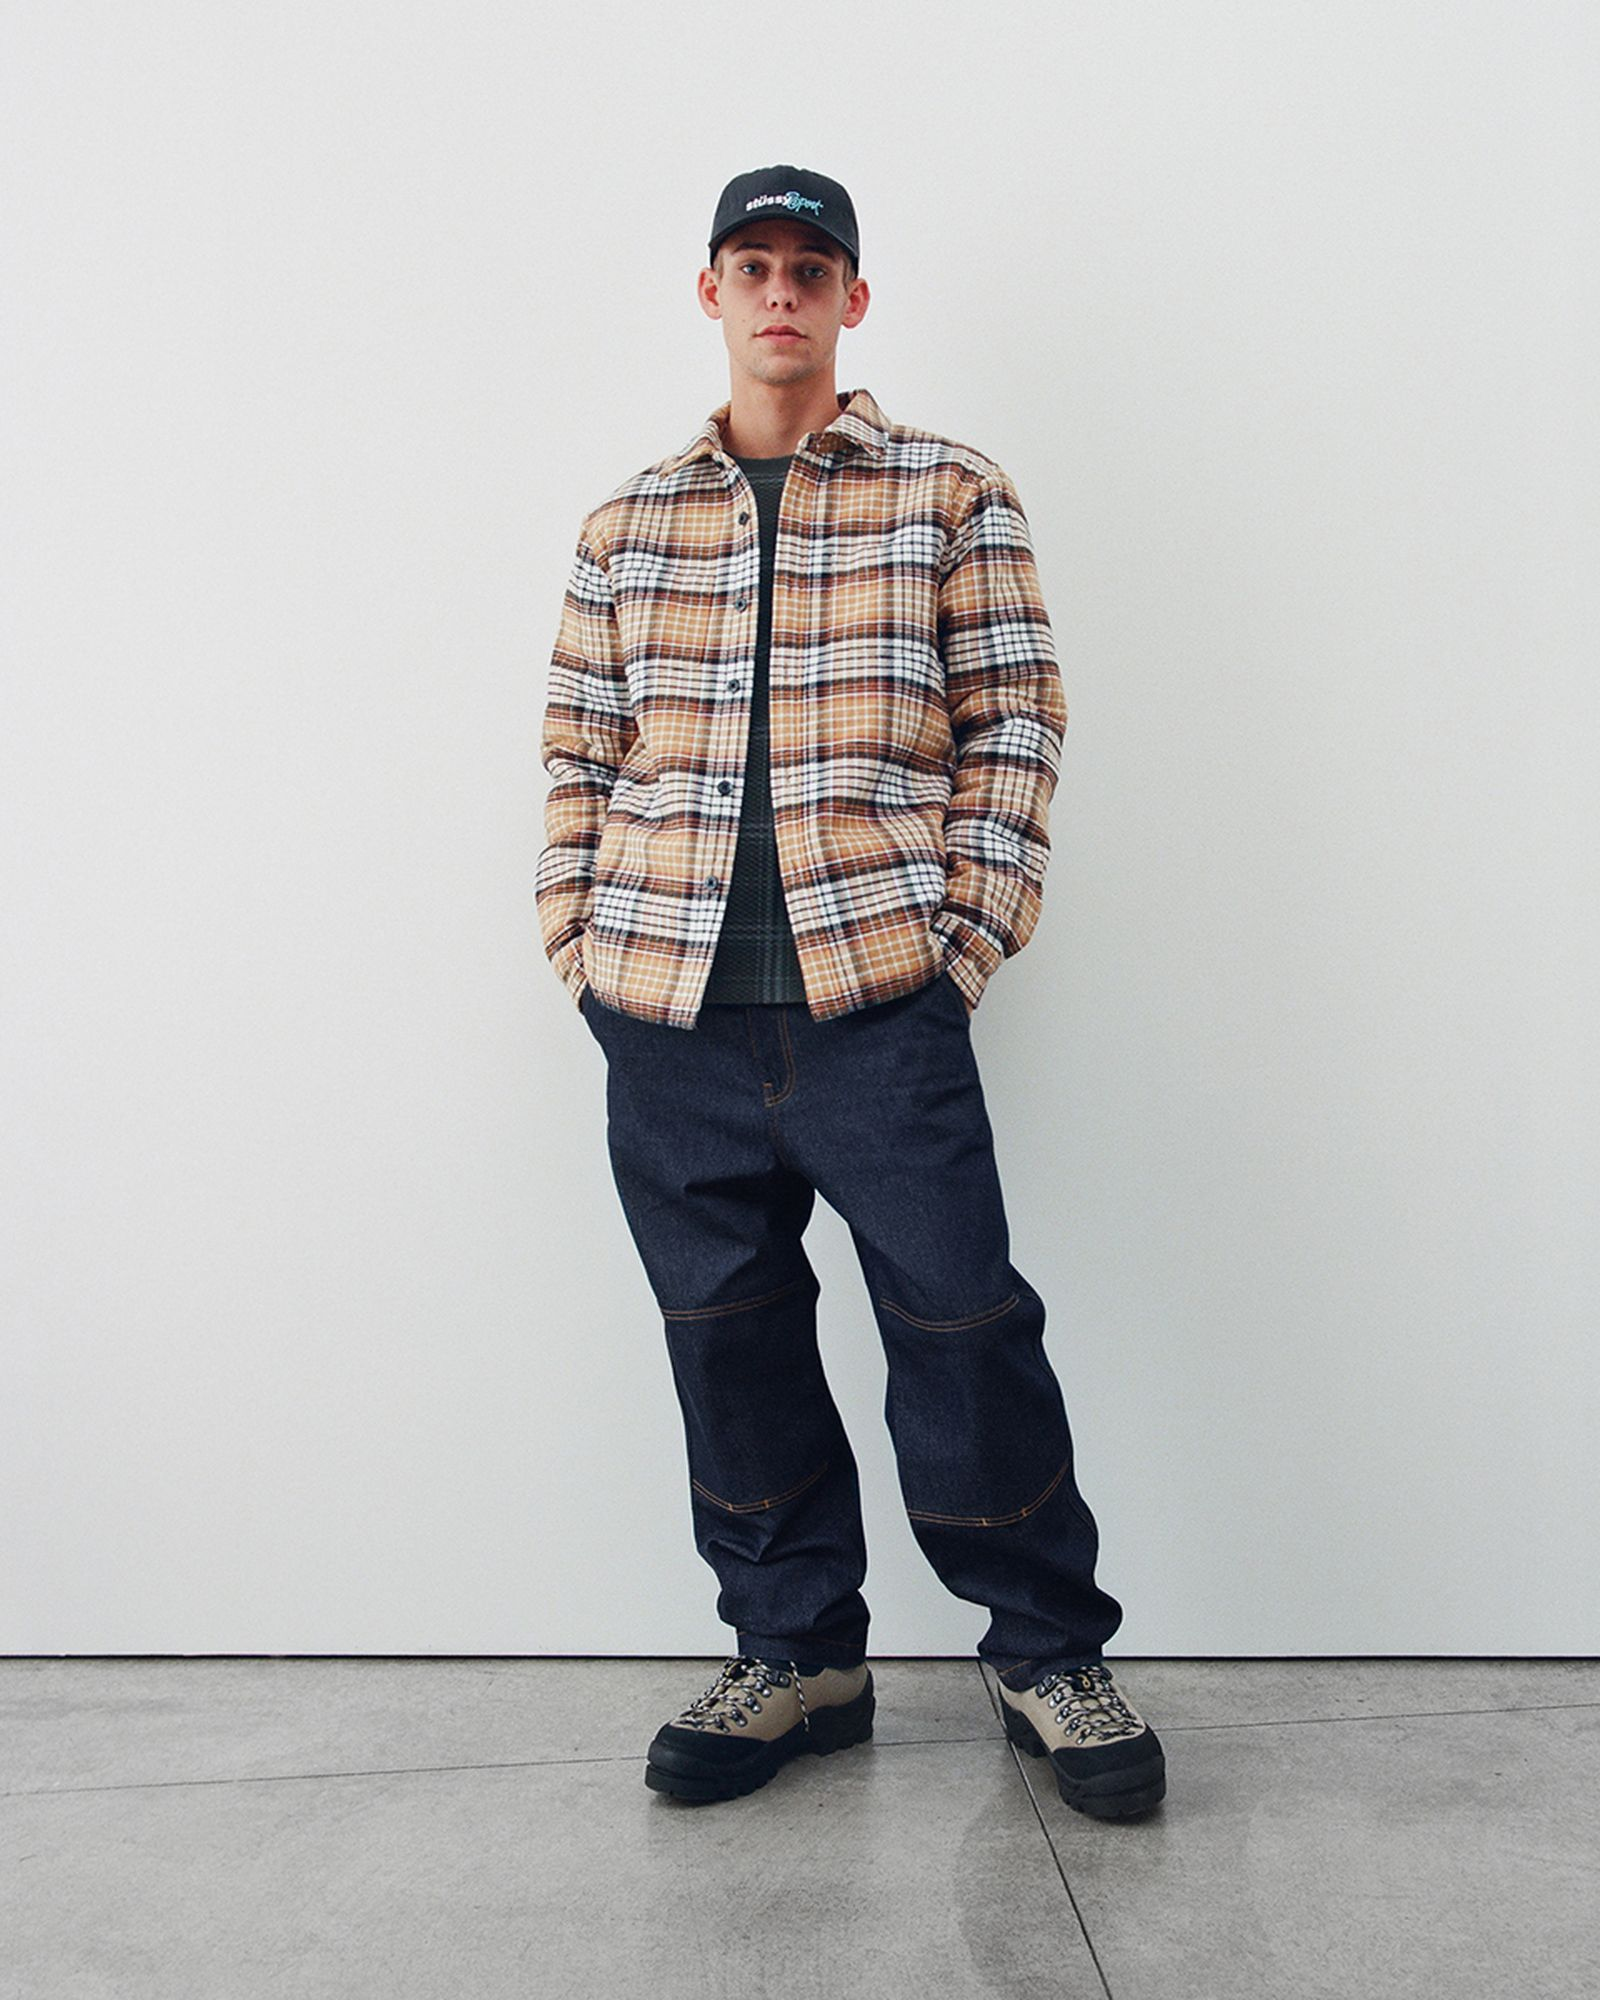 Stussy fall 2021 collection lookbook (28)